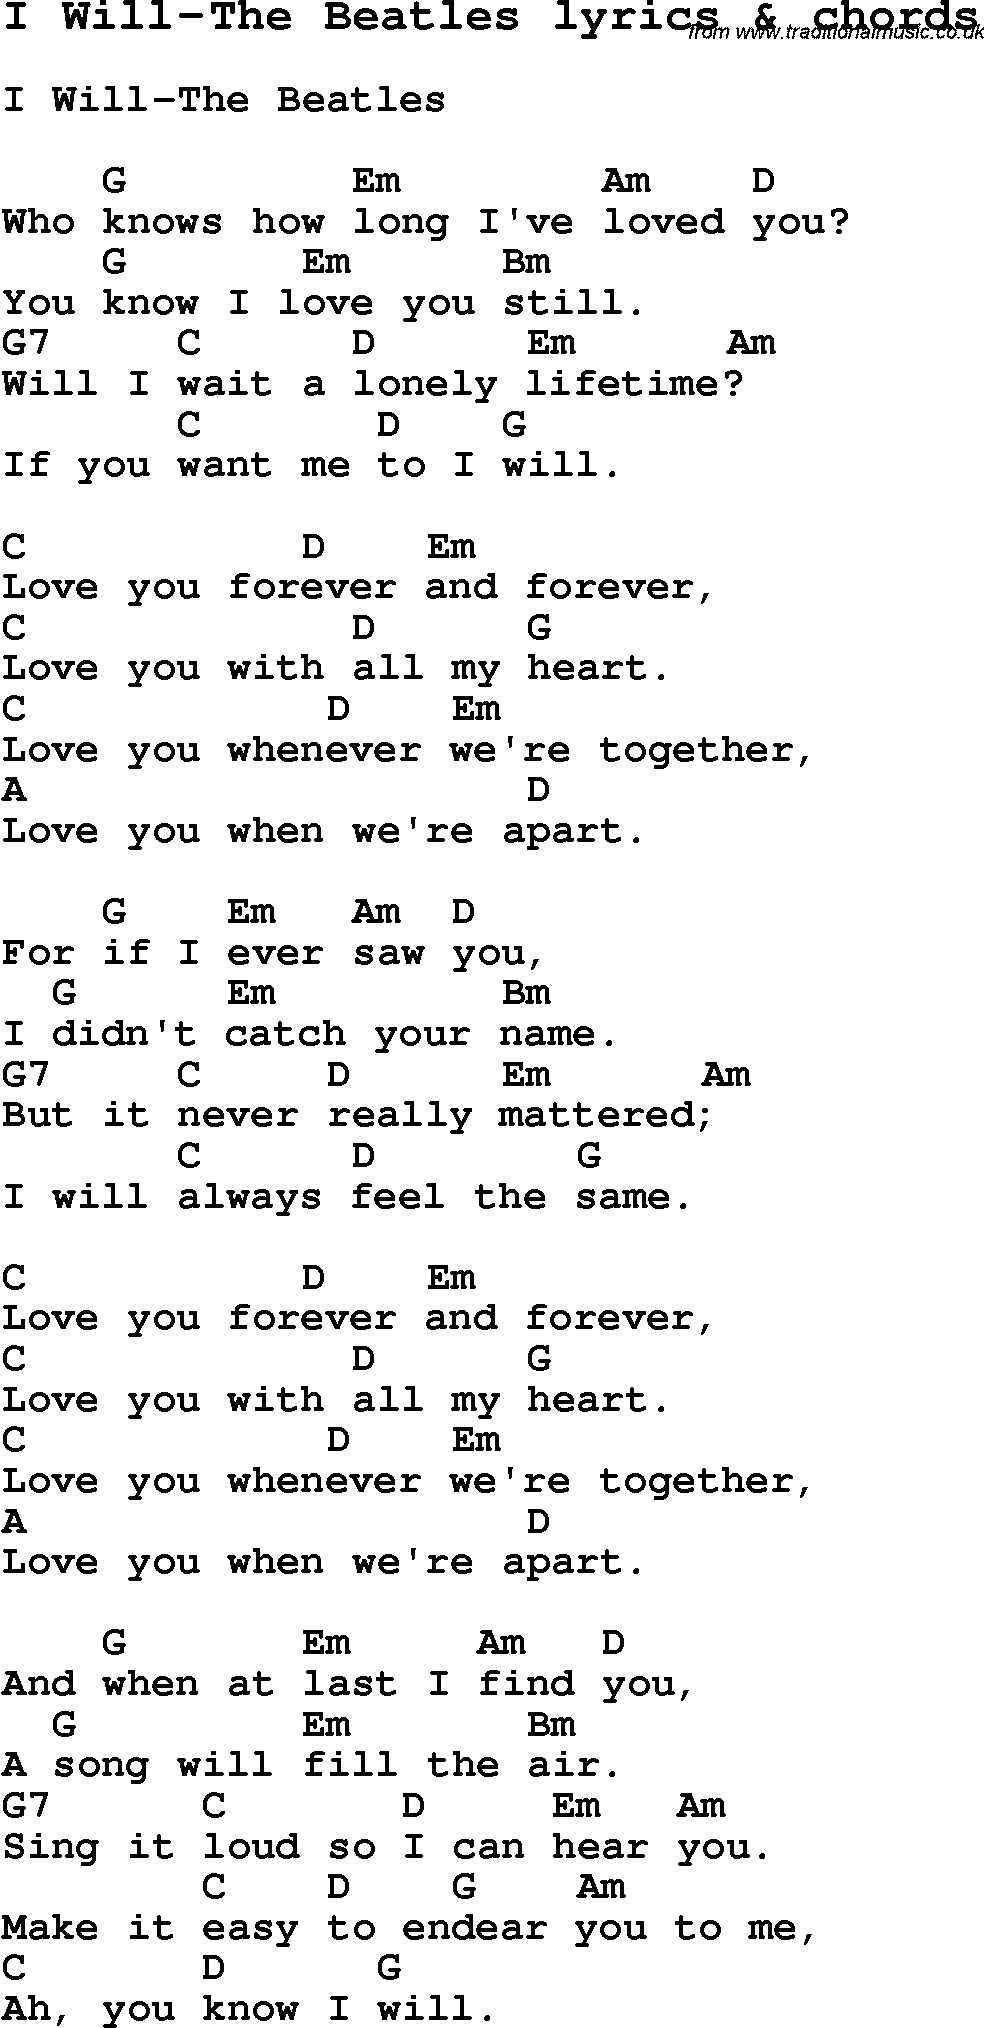 Love Song Lyrics for:I Will-The Beatles with chords.